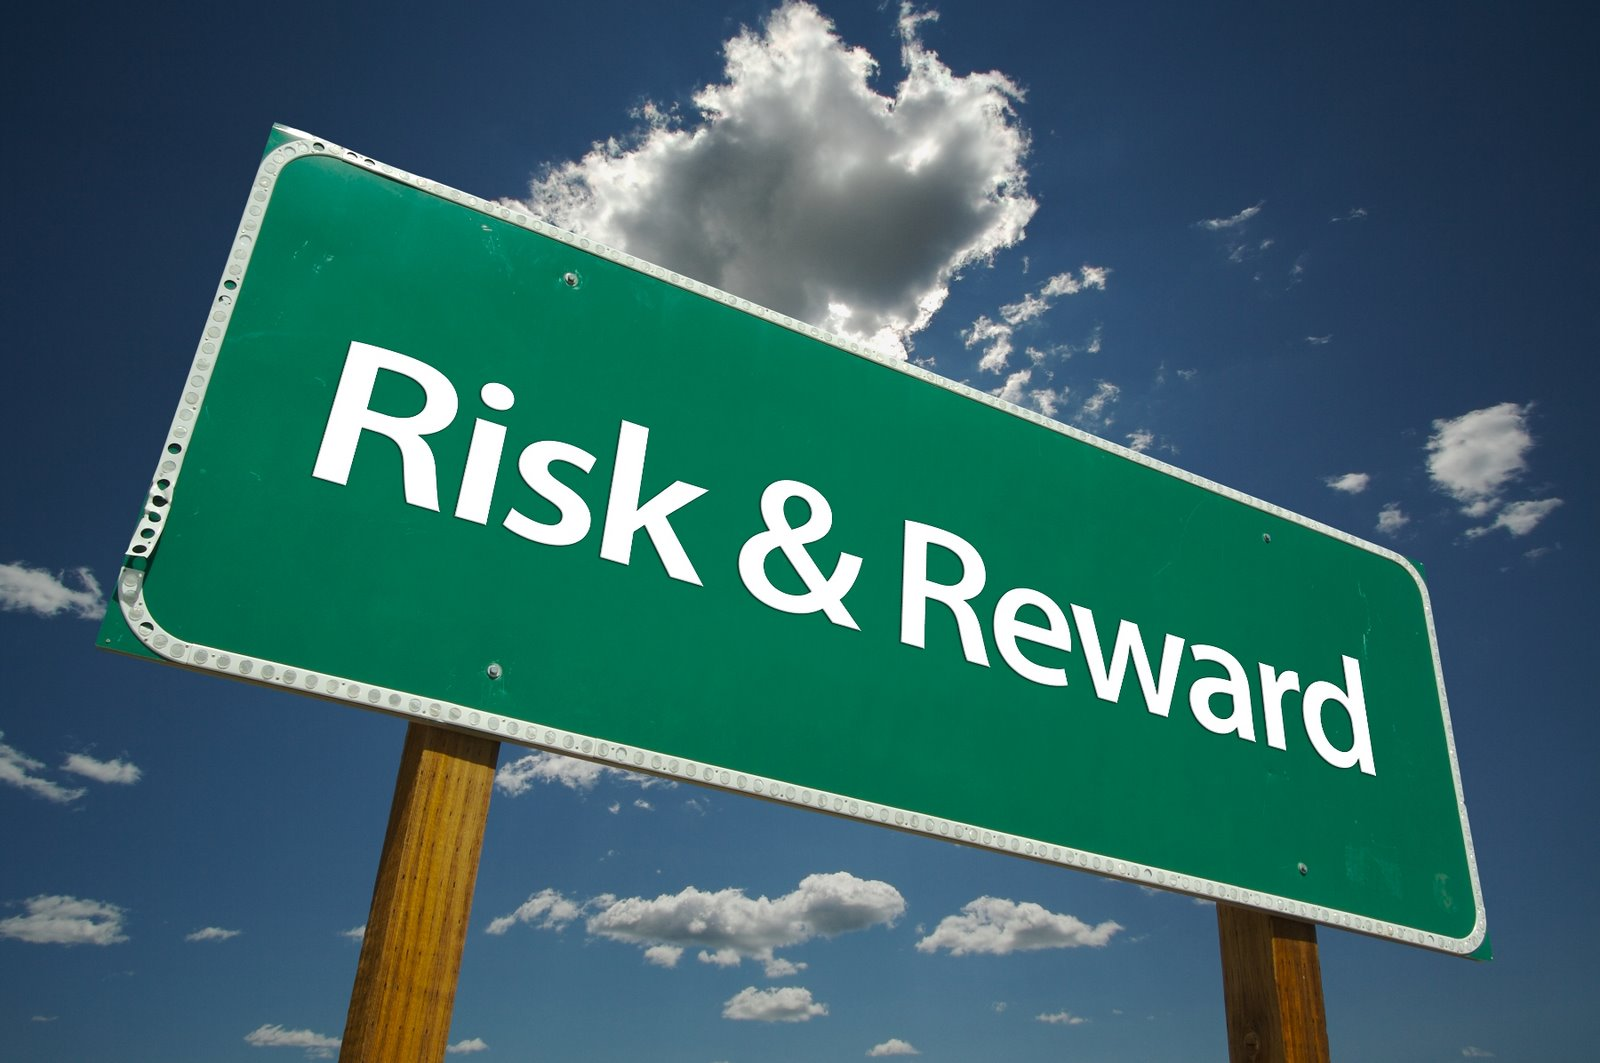 solutions to economic challenges involve risk and reward